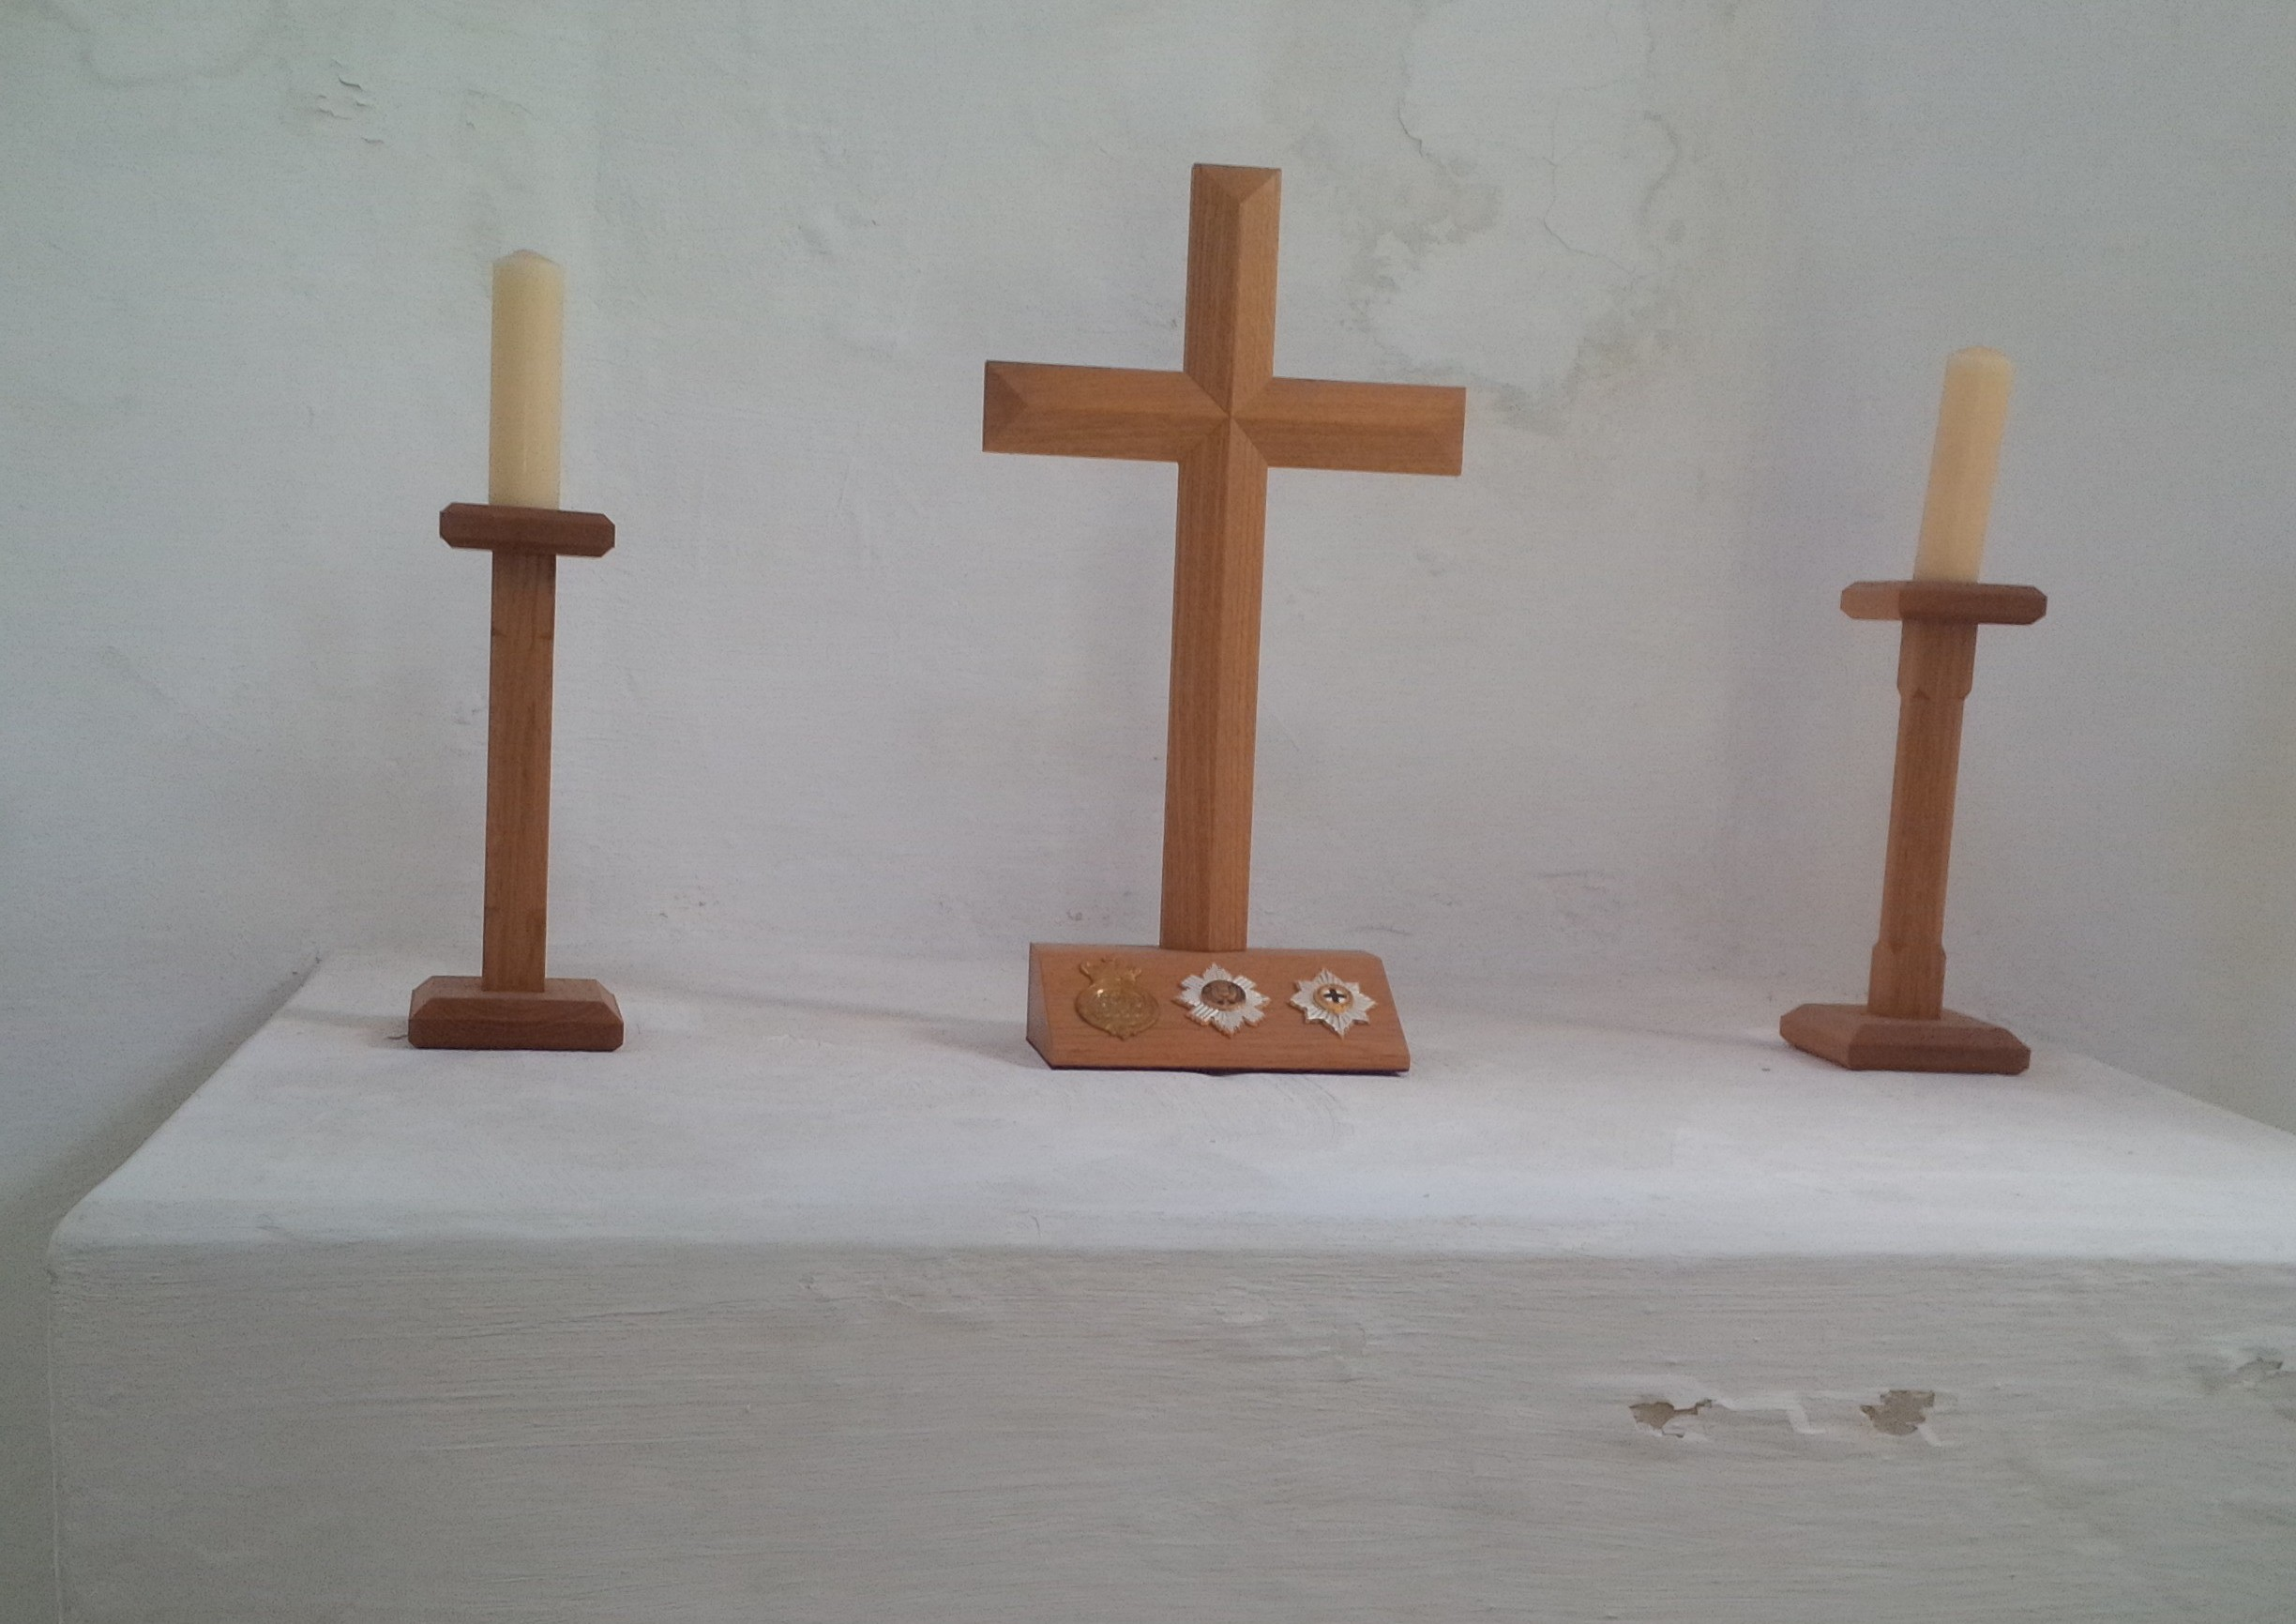 The Insignia of the Grenadier, Scots and Coldstream Guards on the Cross in the Chapel at Hougoumont